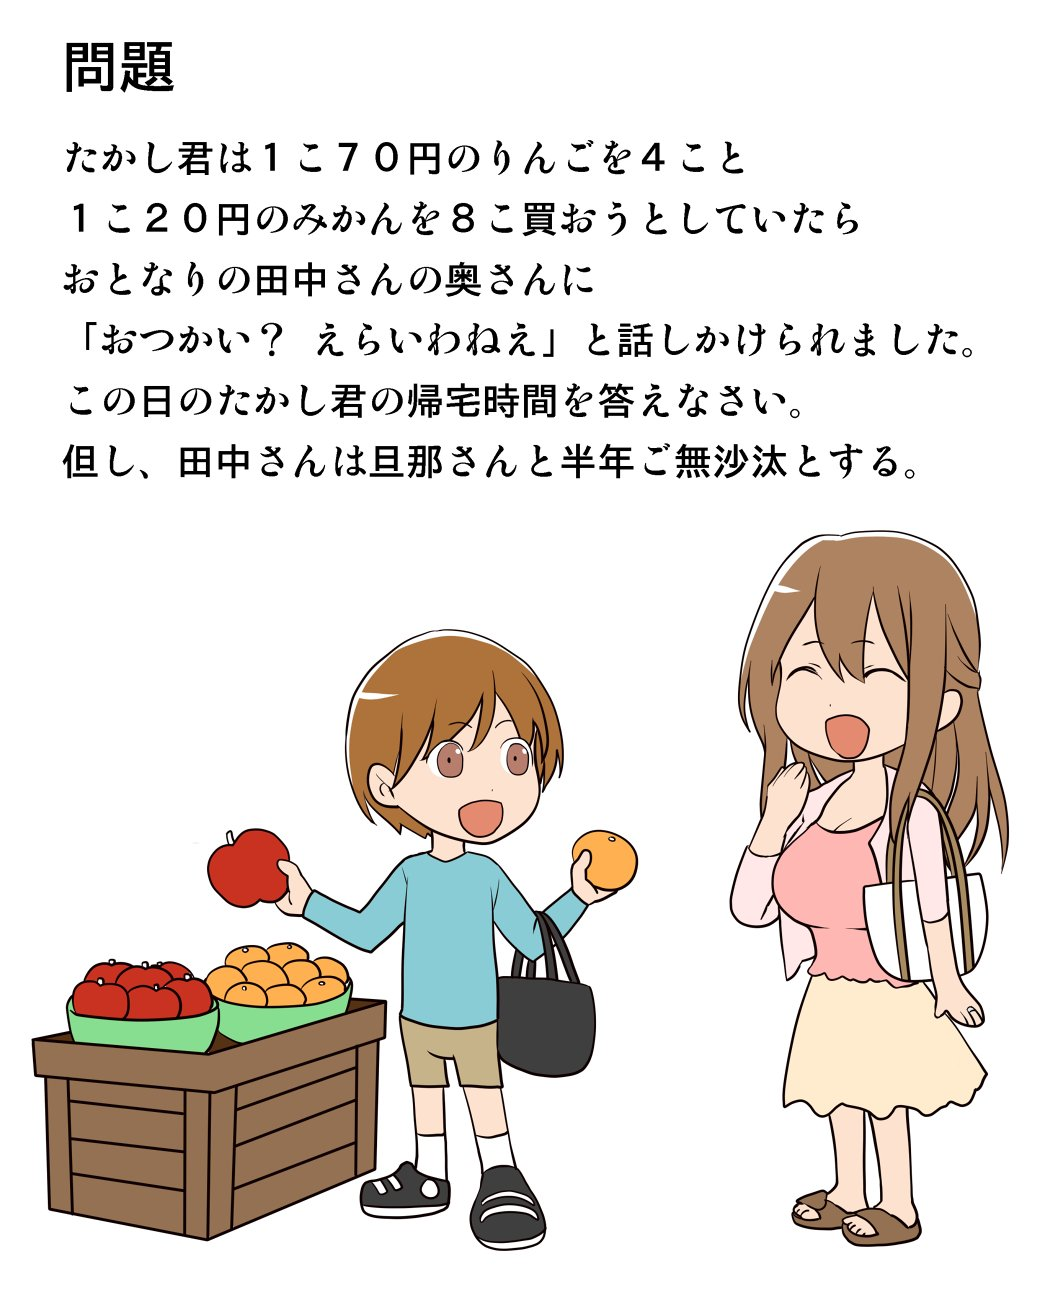 1boy 1girl apple bag breasts brown_eyes brown_hair food fruit grocery_bag highres kloah large_breasts orange original shopping_bag smile